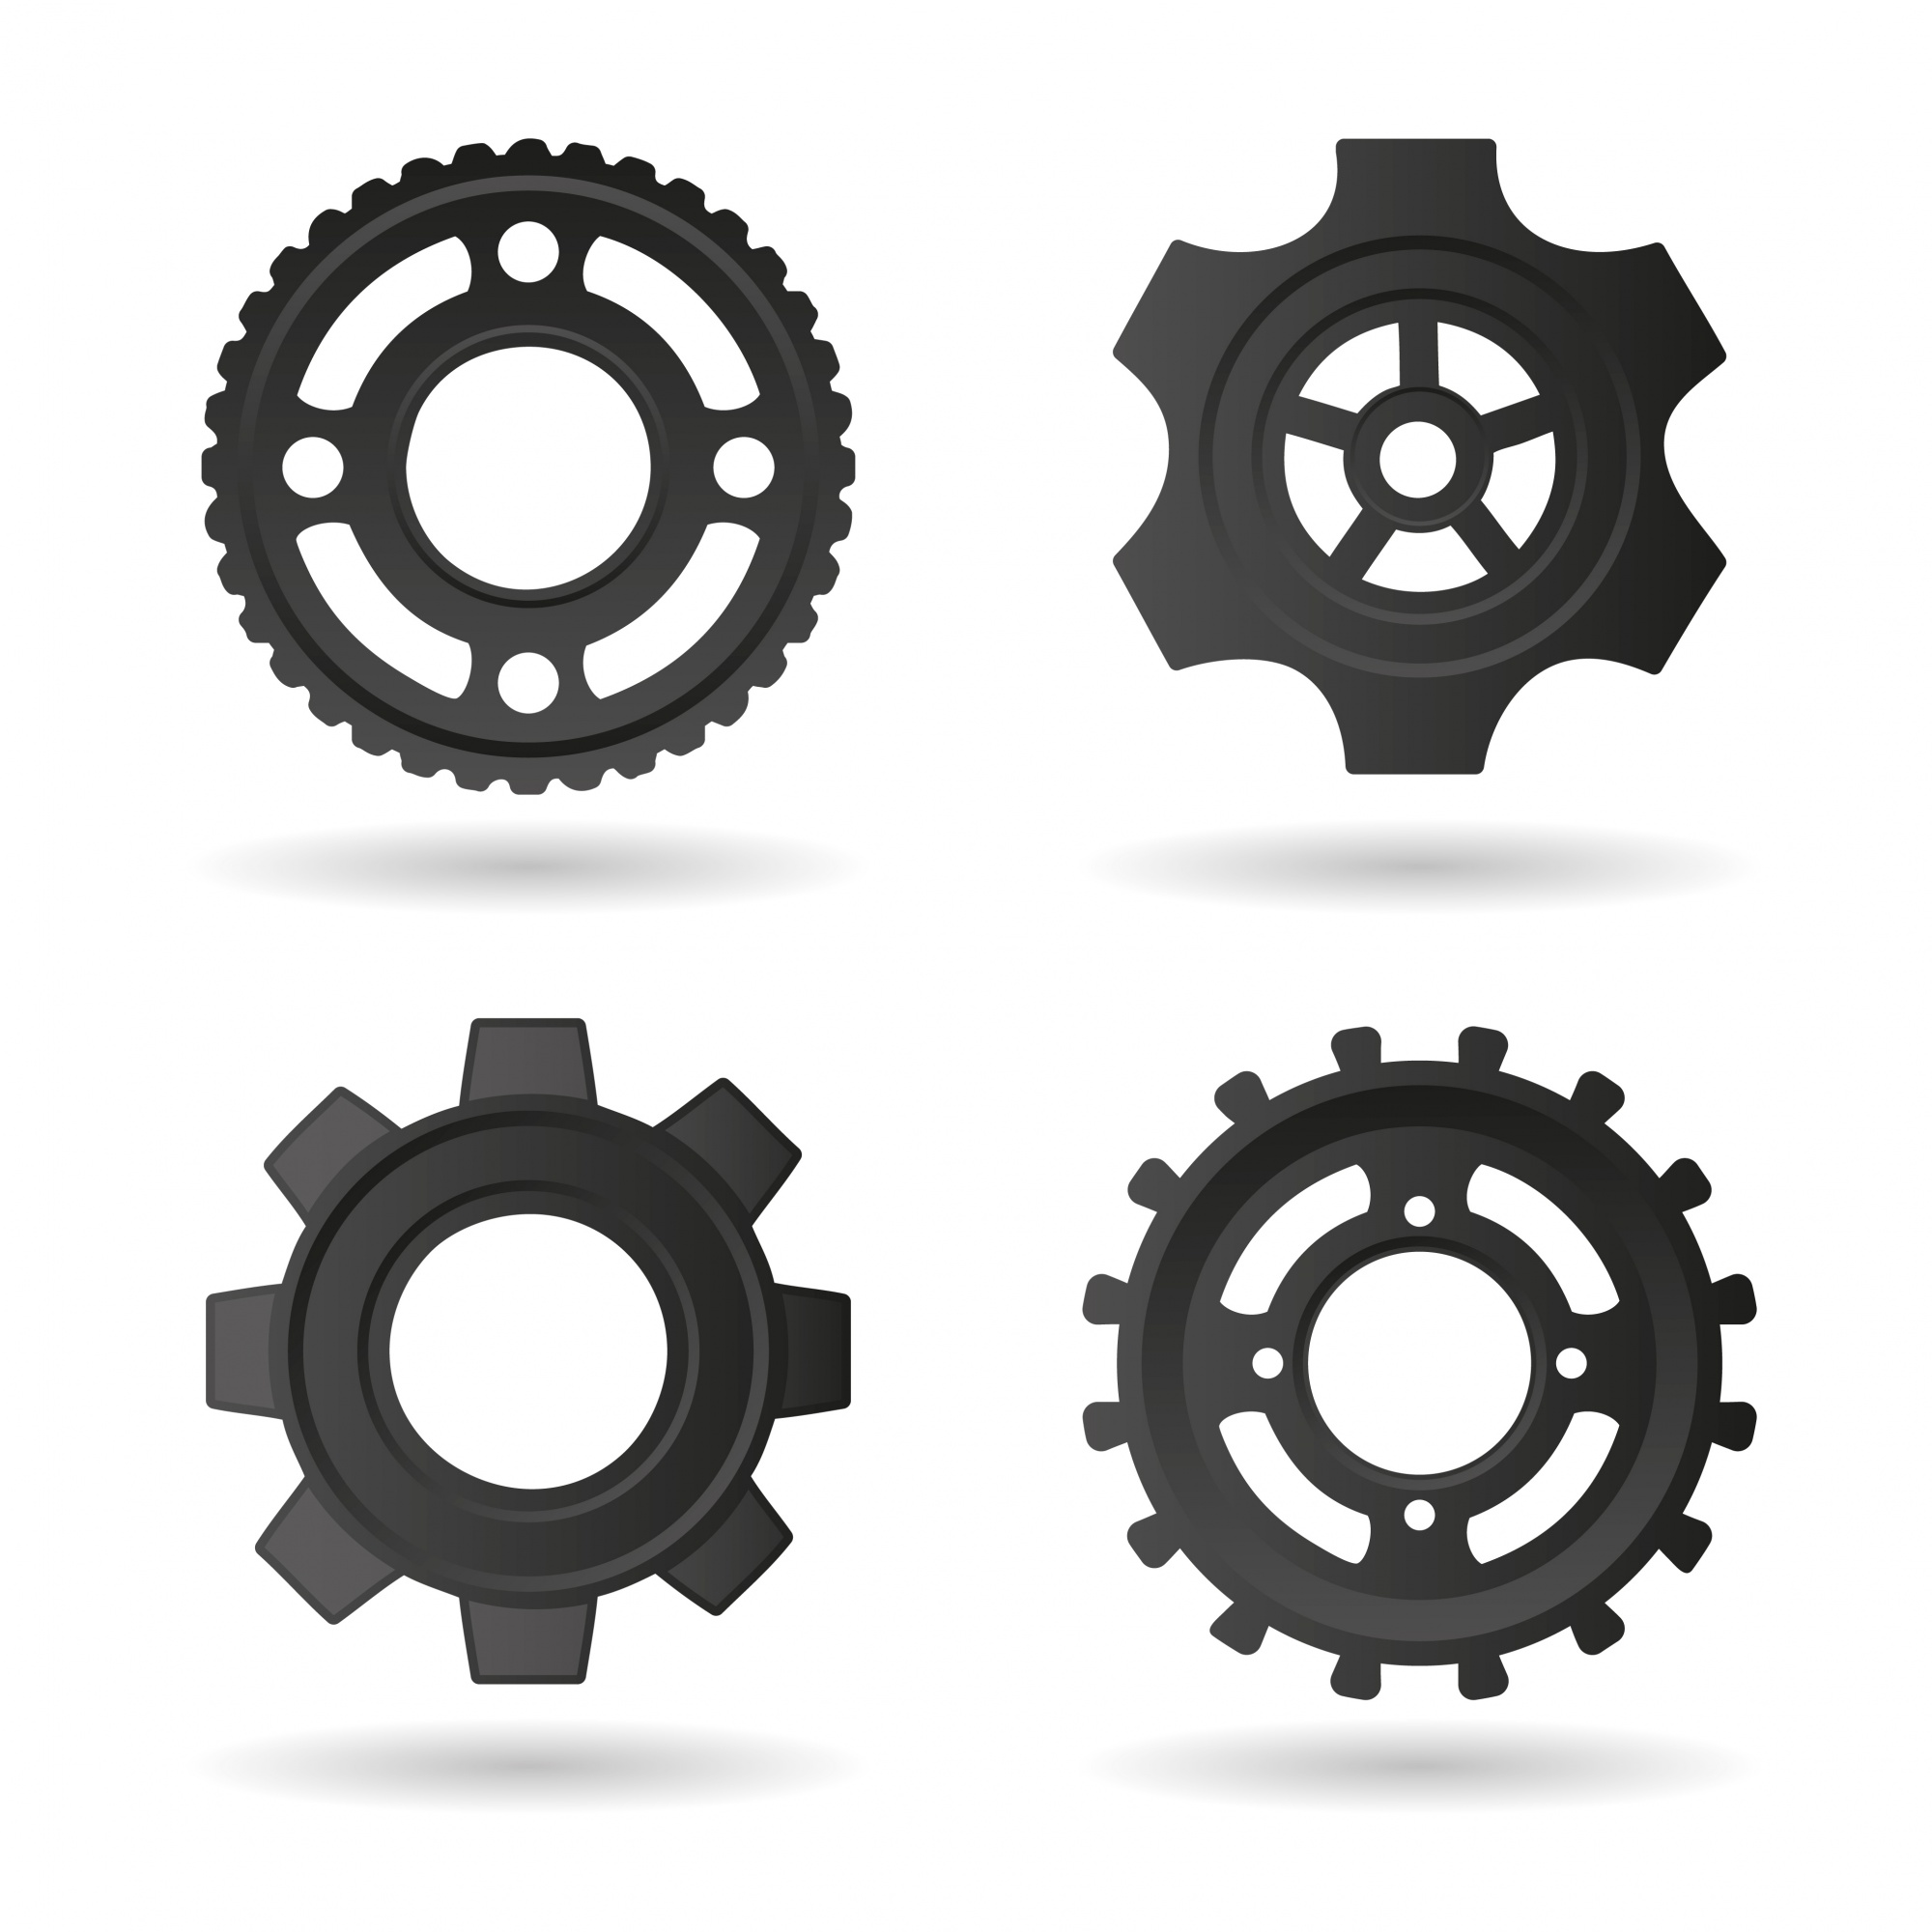 Gear icons collection